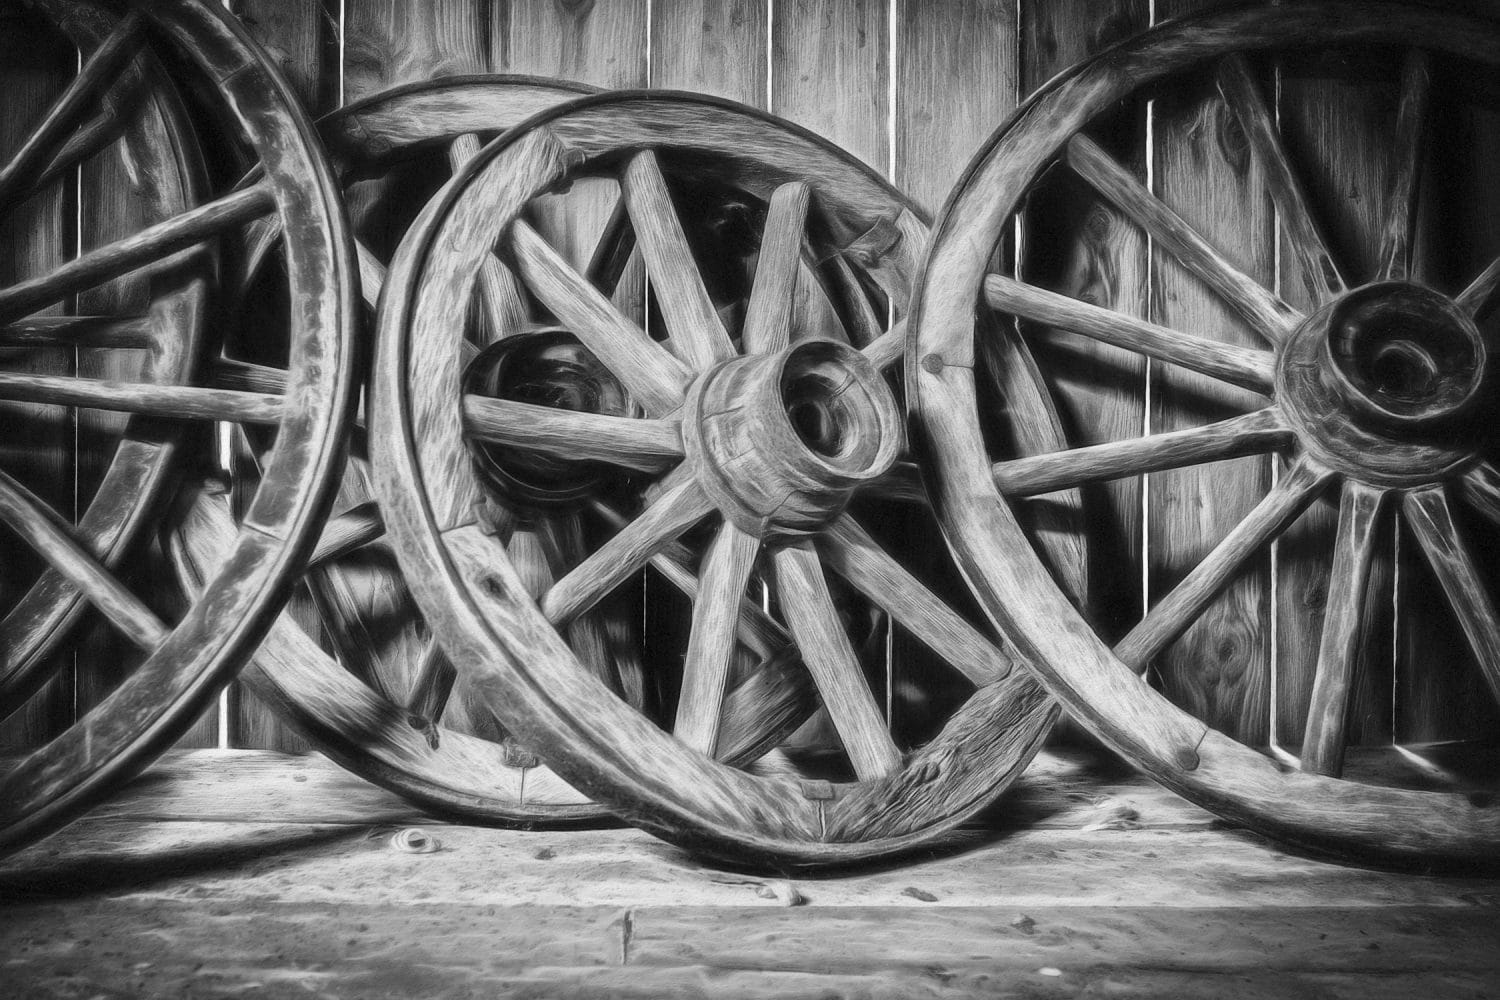 The Old Wooden Wheel